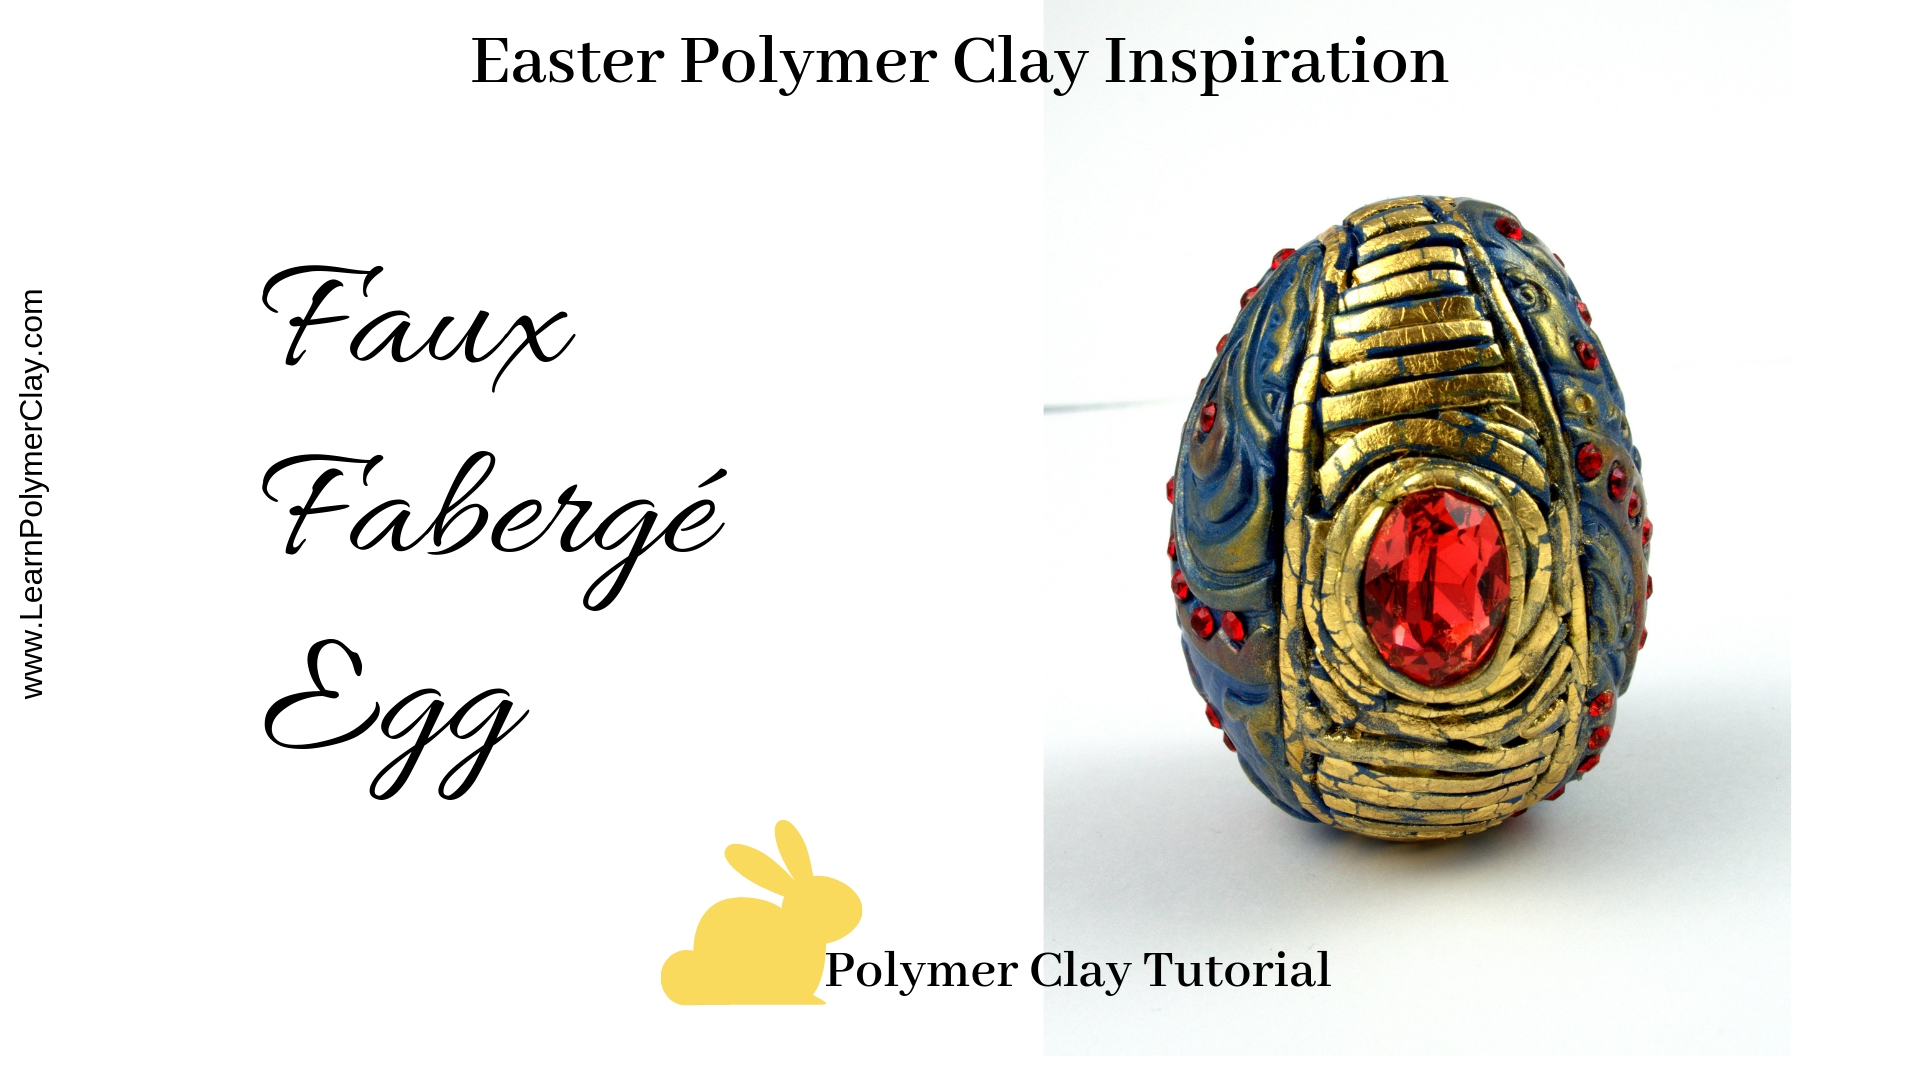 Easter inspired polymer clay tutorial